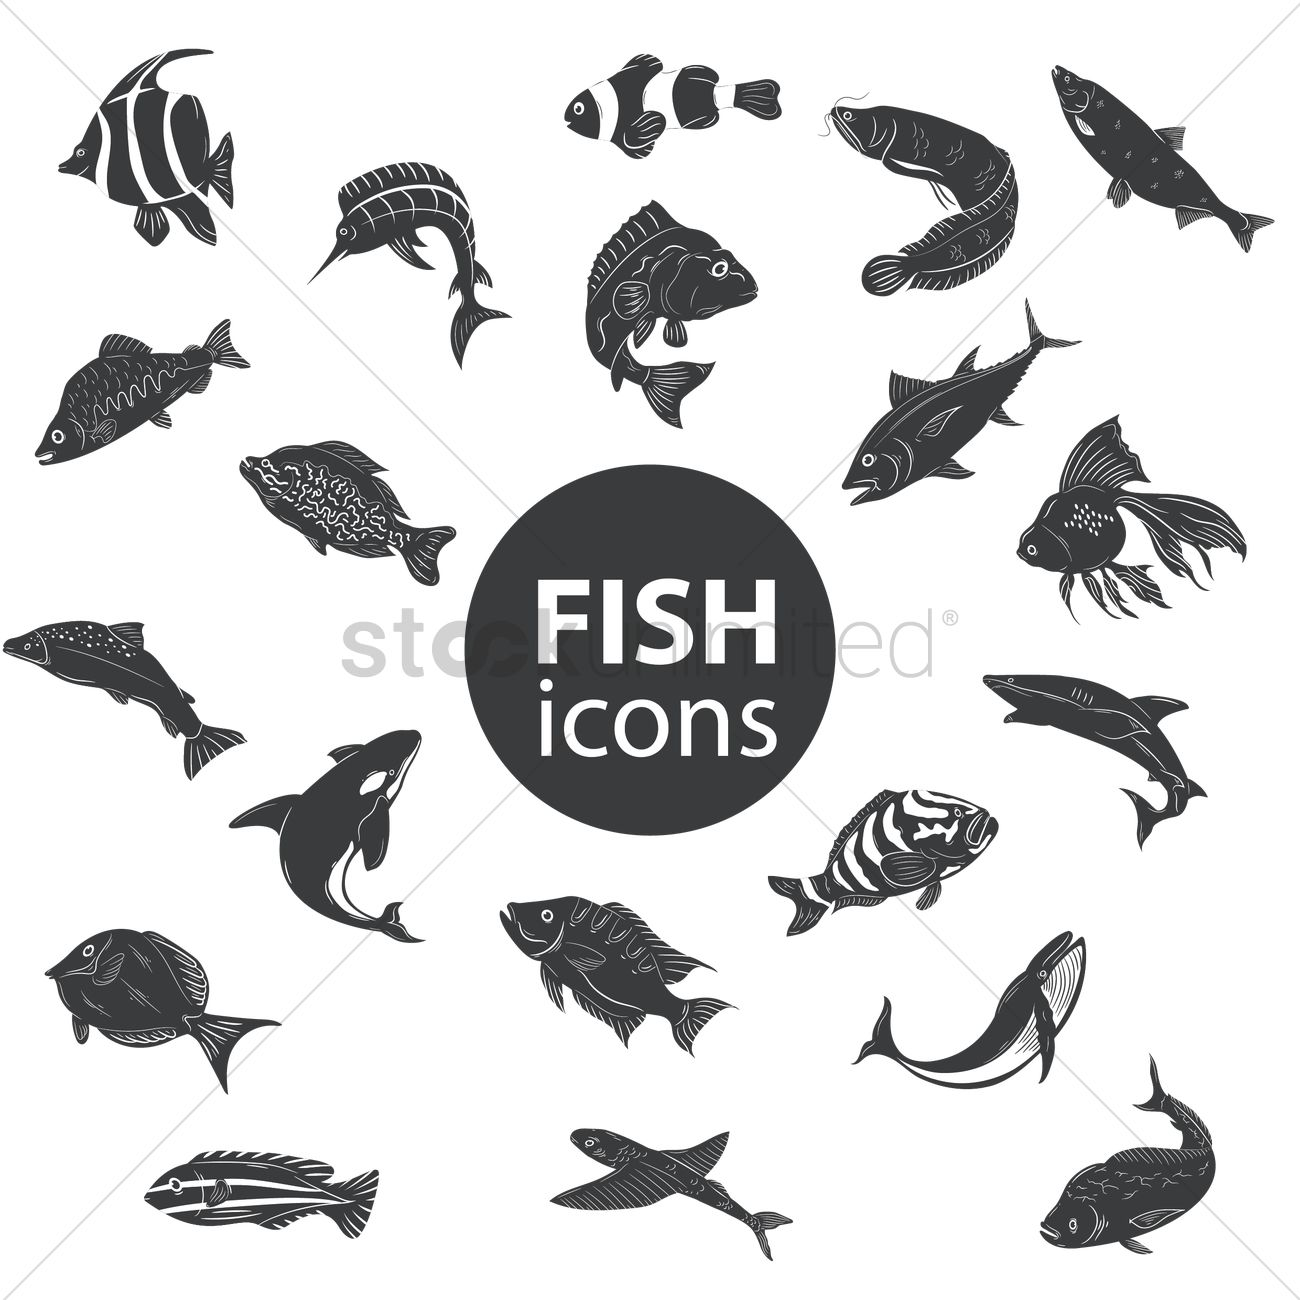 free fish icons vector image 1528350 stockunlimited